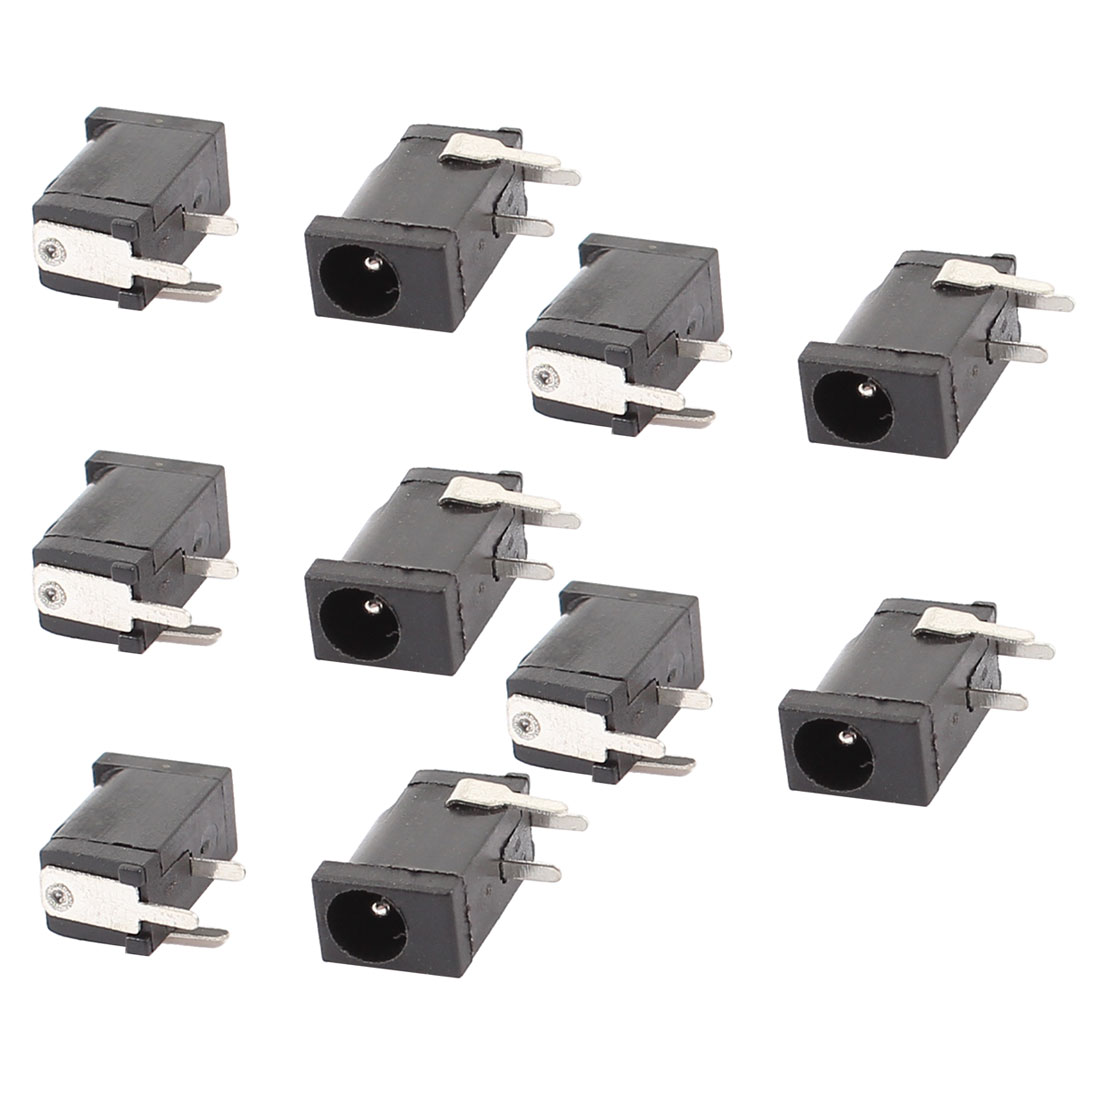 10 Pcs 3 Terminals 3.5mm x 1.3mm DC Power Jack Socket PCB Mount Charging Connector Port